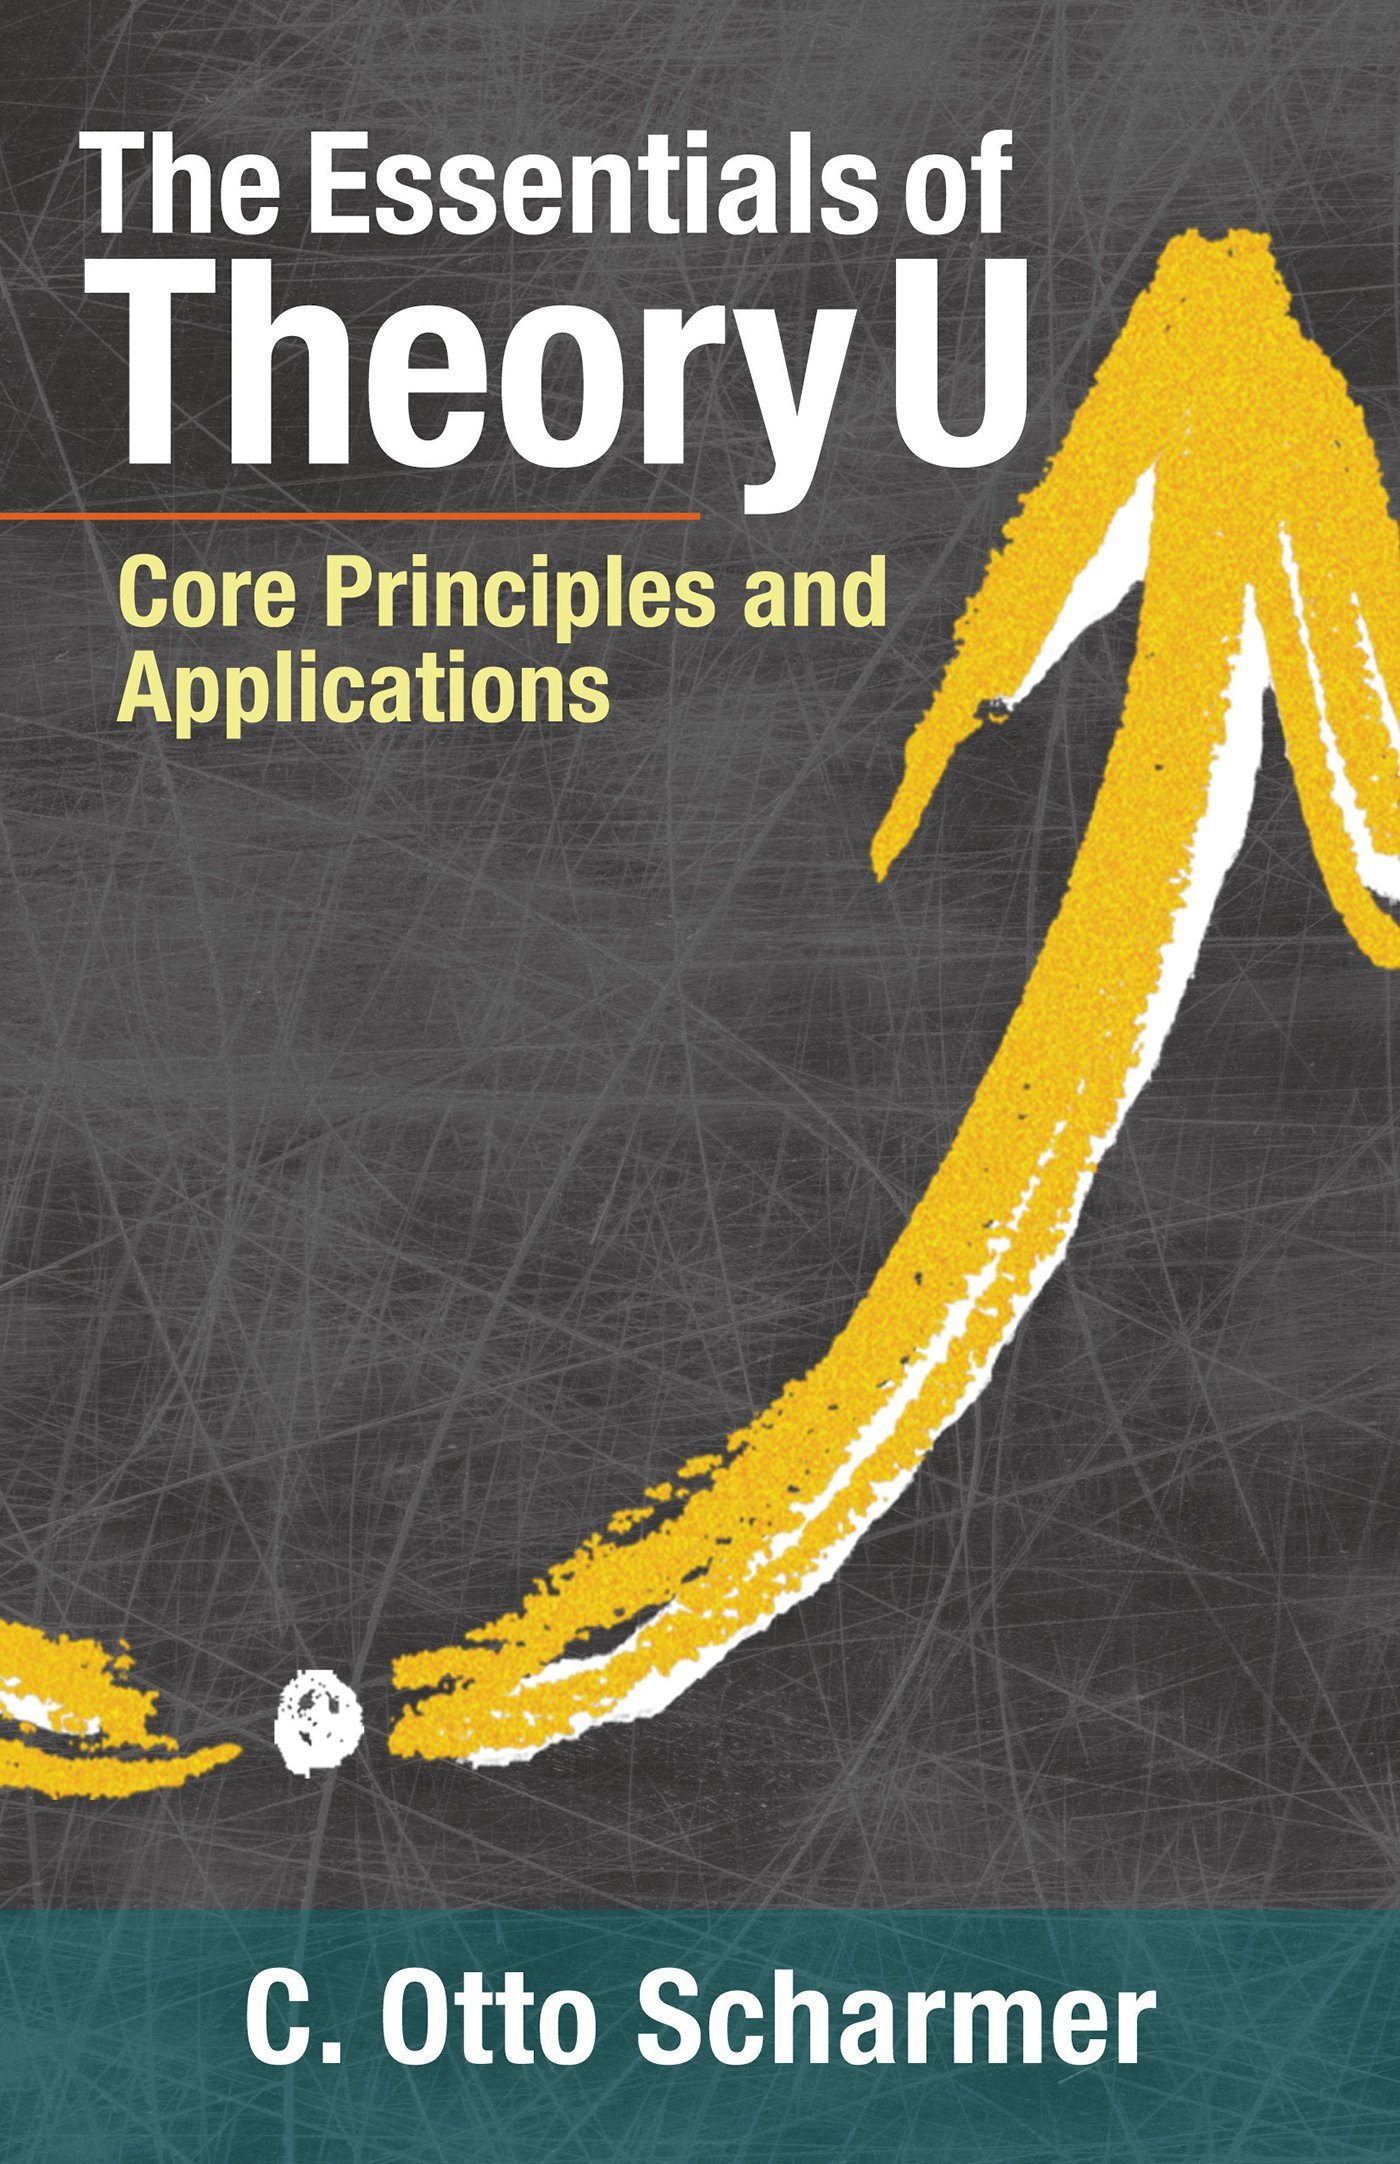 The essentials of theory u core principles and applications otto the essentials of theory u core principles and applications otto scharmer 9781523094400 amazon books fandeluxe Gallery